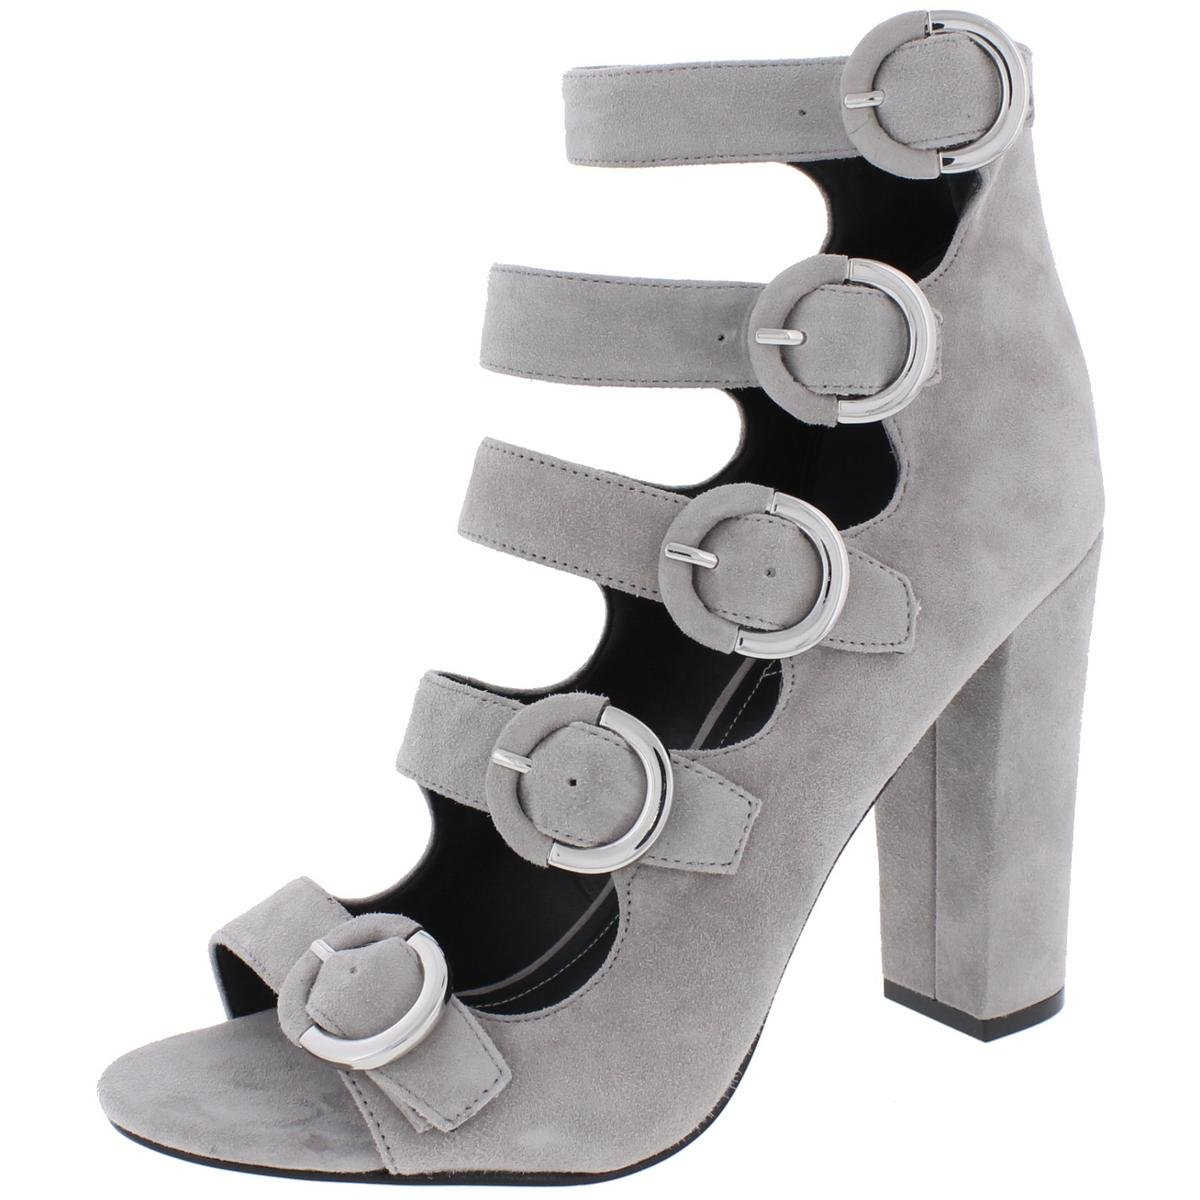 KENDALL + KYLIE Evie Women US 8.5 Gray Sandals